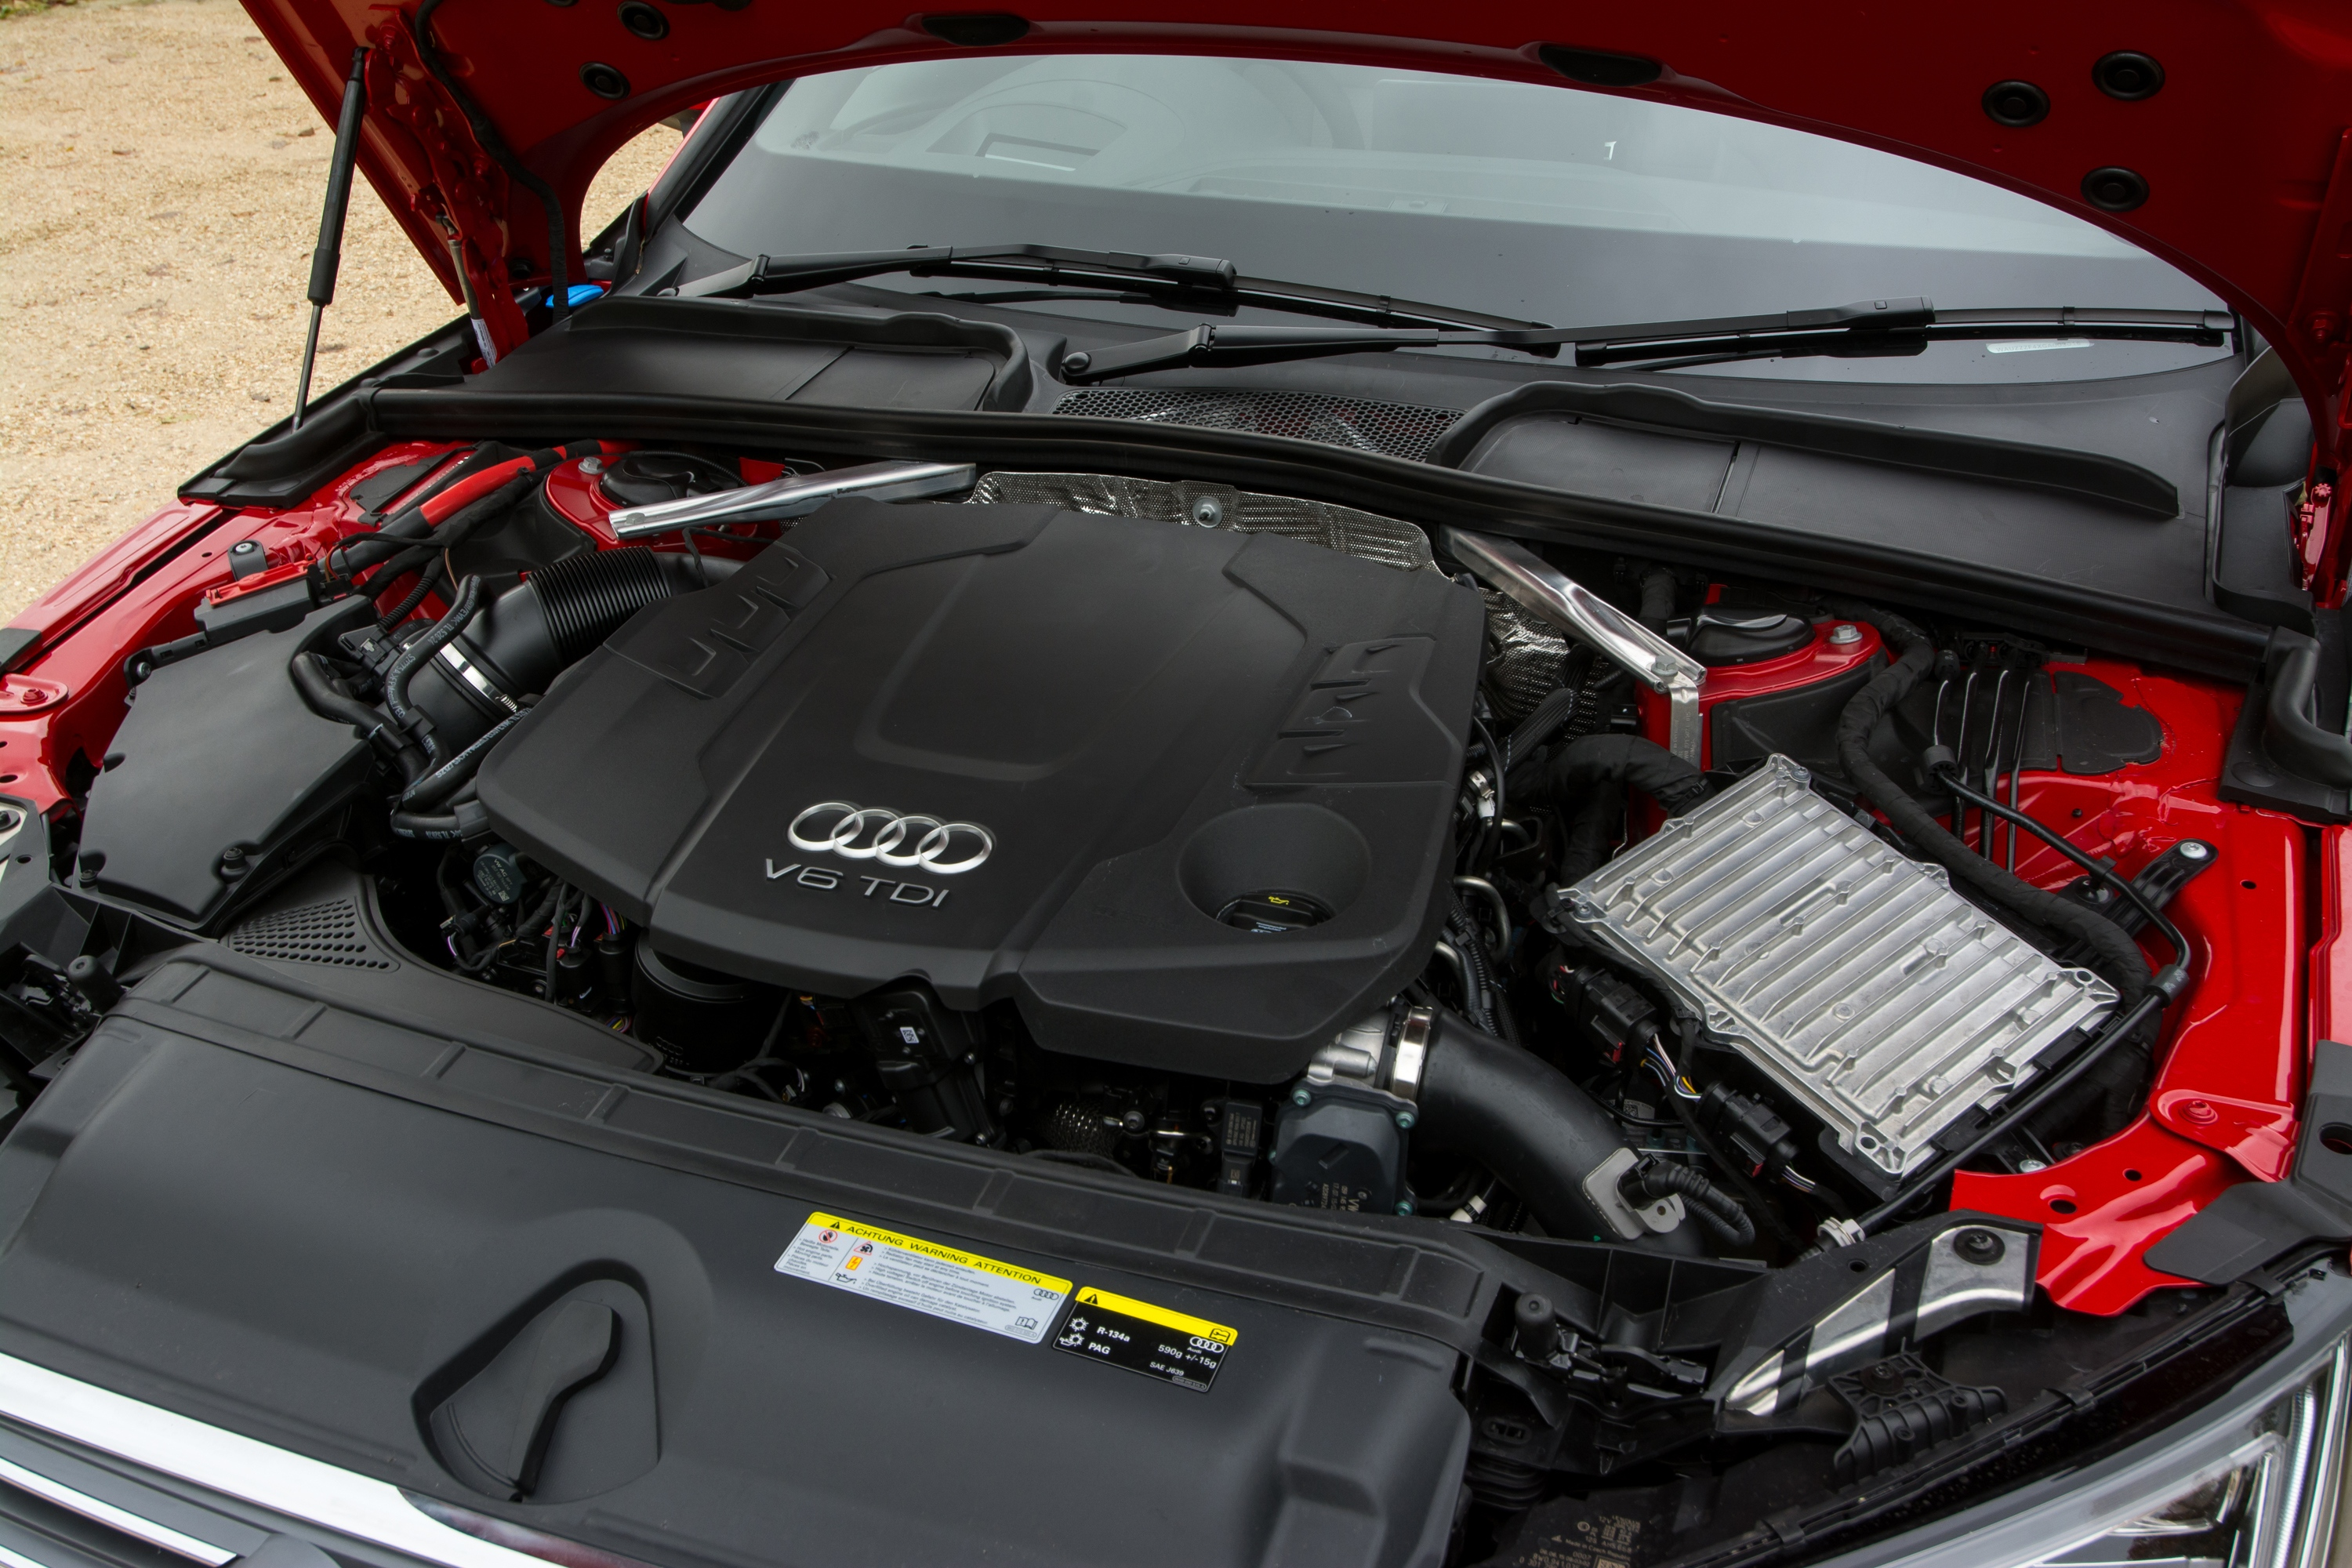 audi working on new v8 tdi and v6 tdi engines the first will come in april 2016 autoevolution. Black Bedroom Furniture Sets. Home Design Ideas